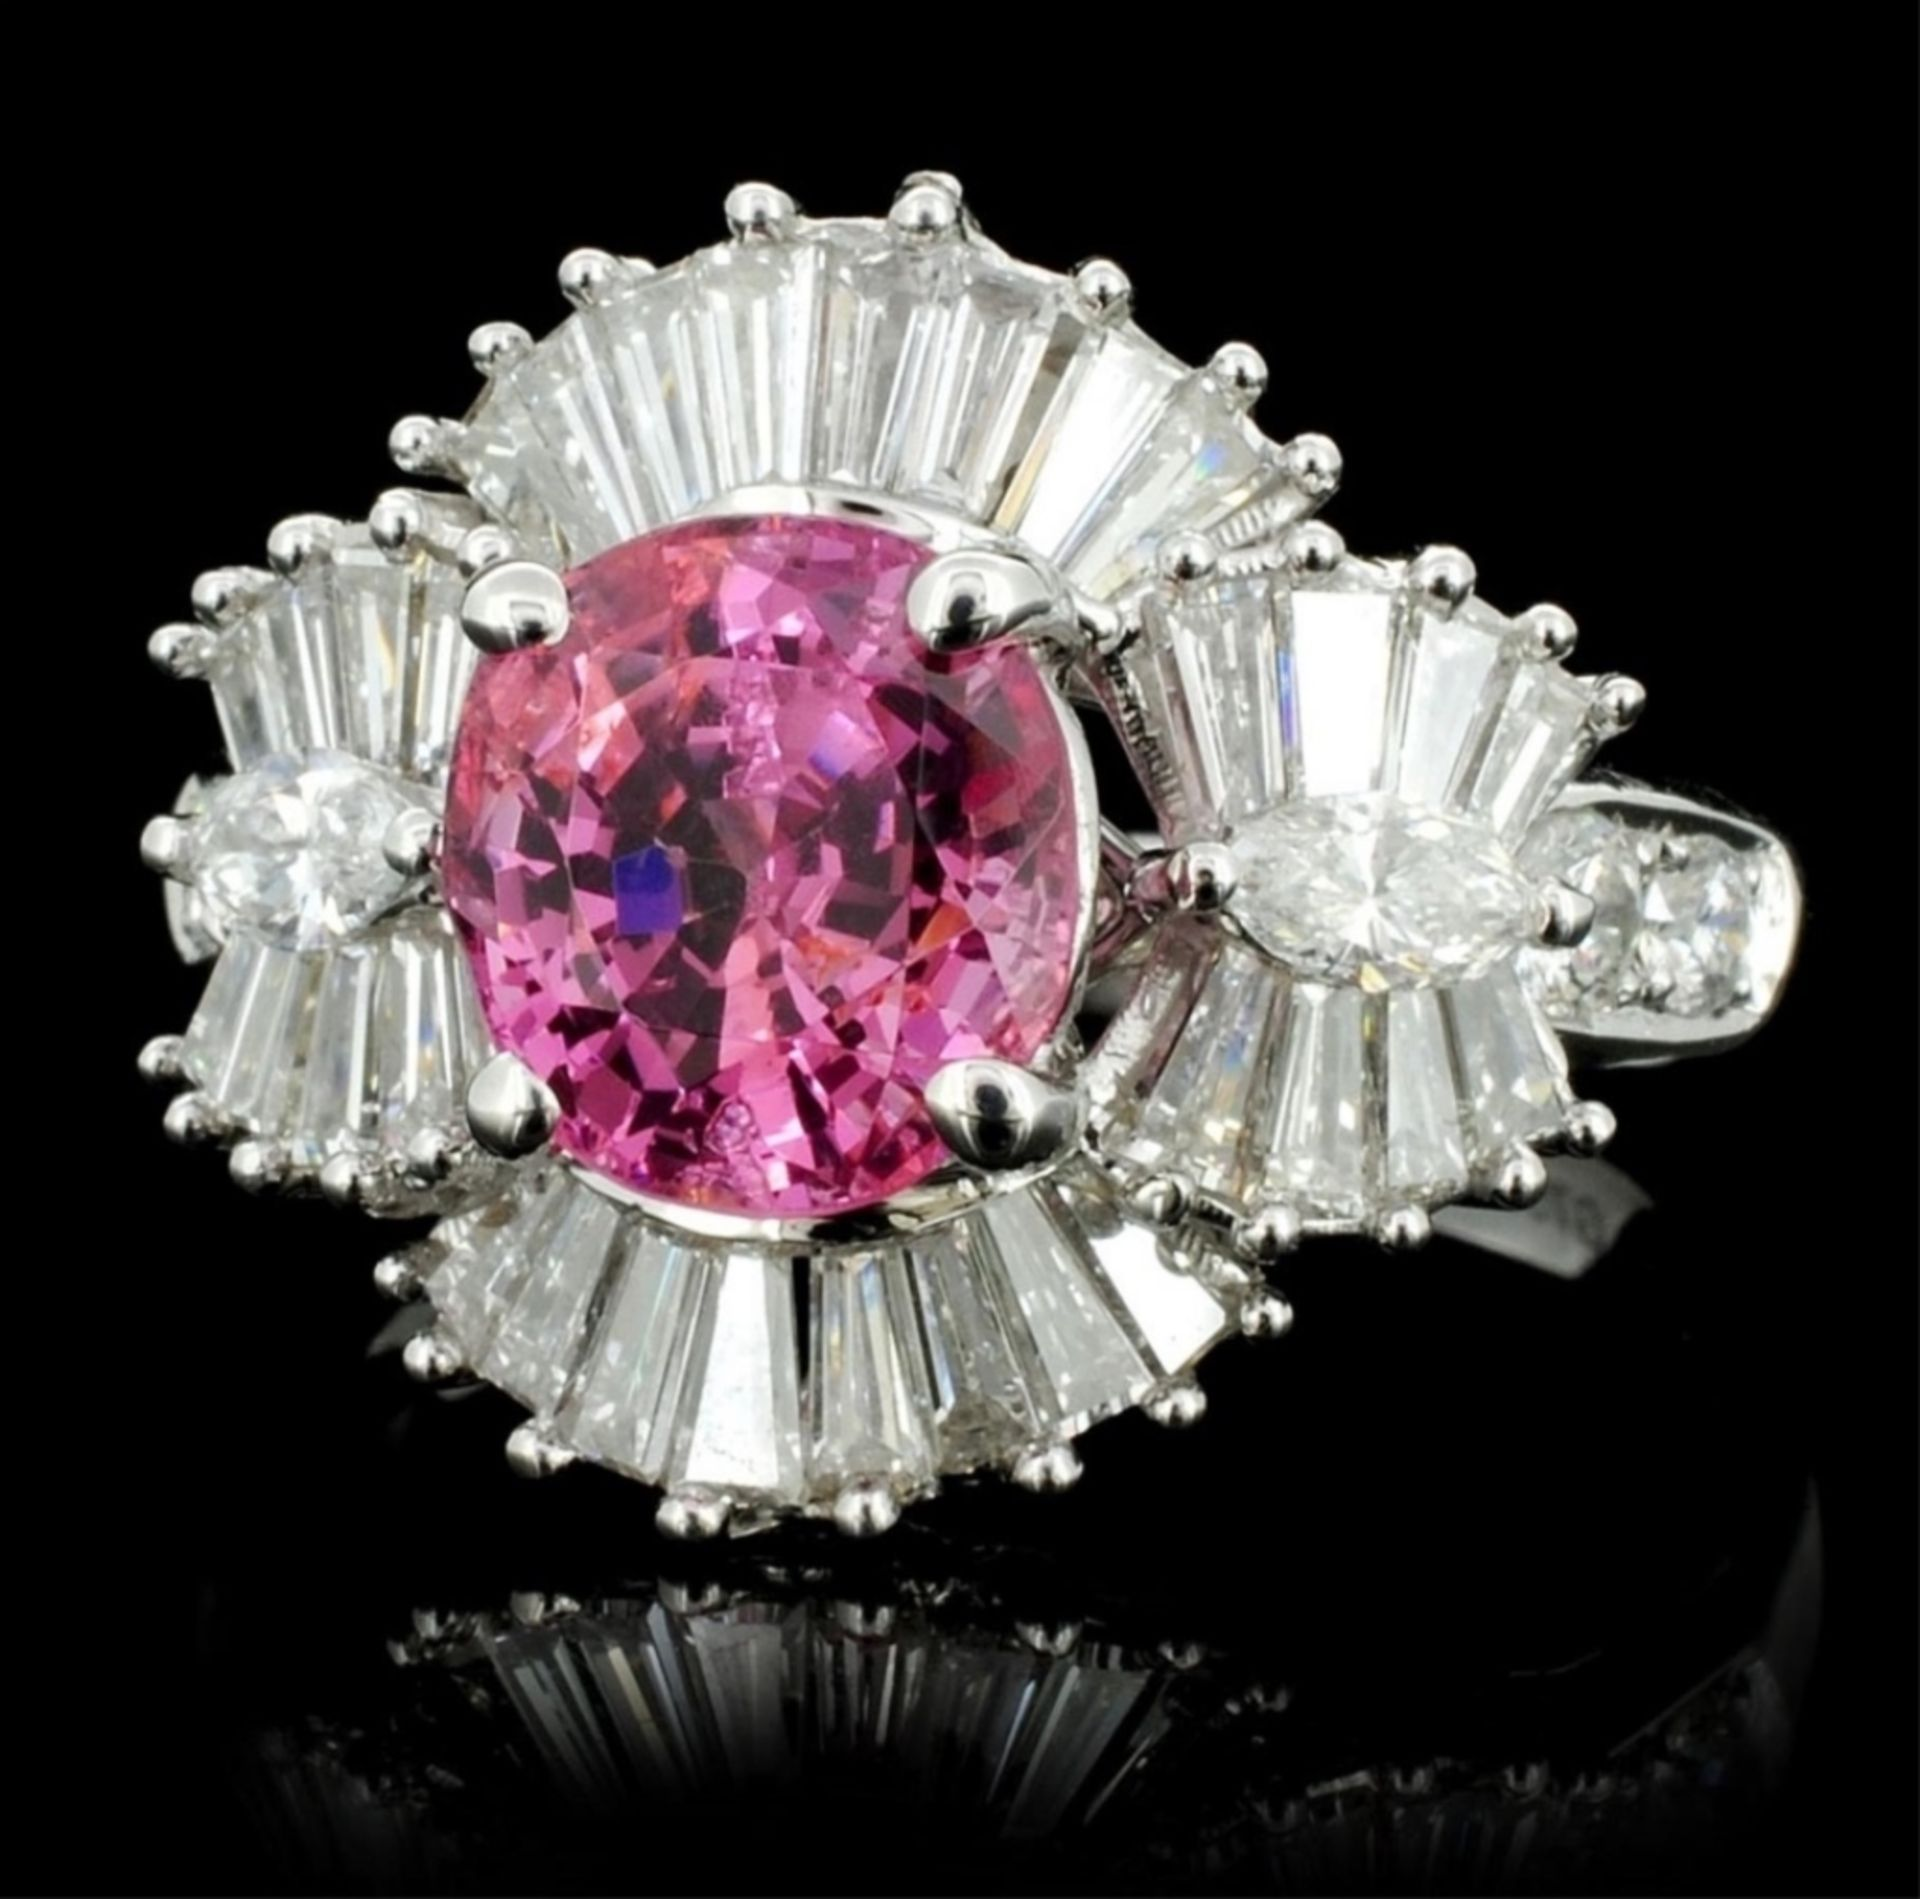 18K White Gold 2.26ct Spinel & 1.51ct Diamond Ring - Image 2 of 4